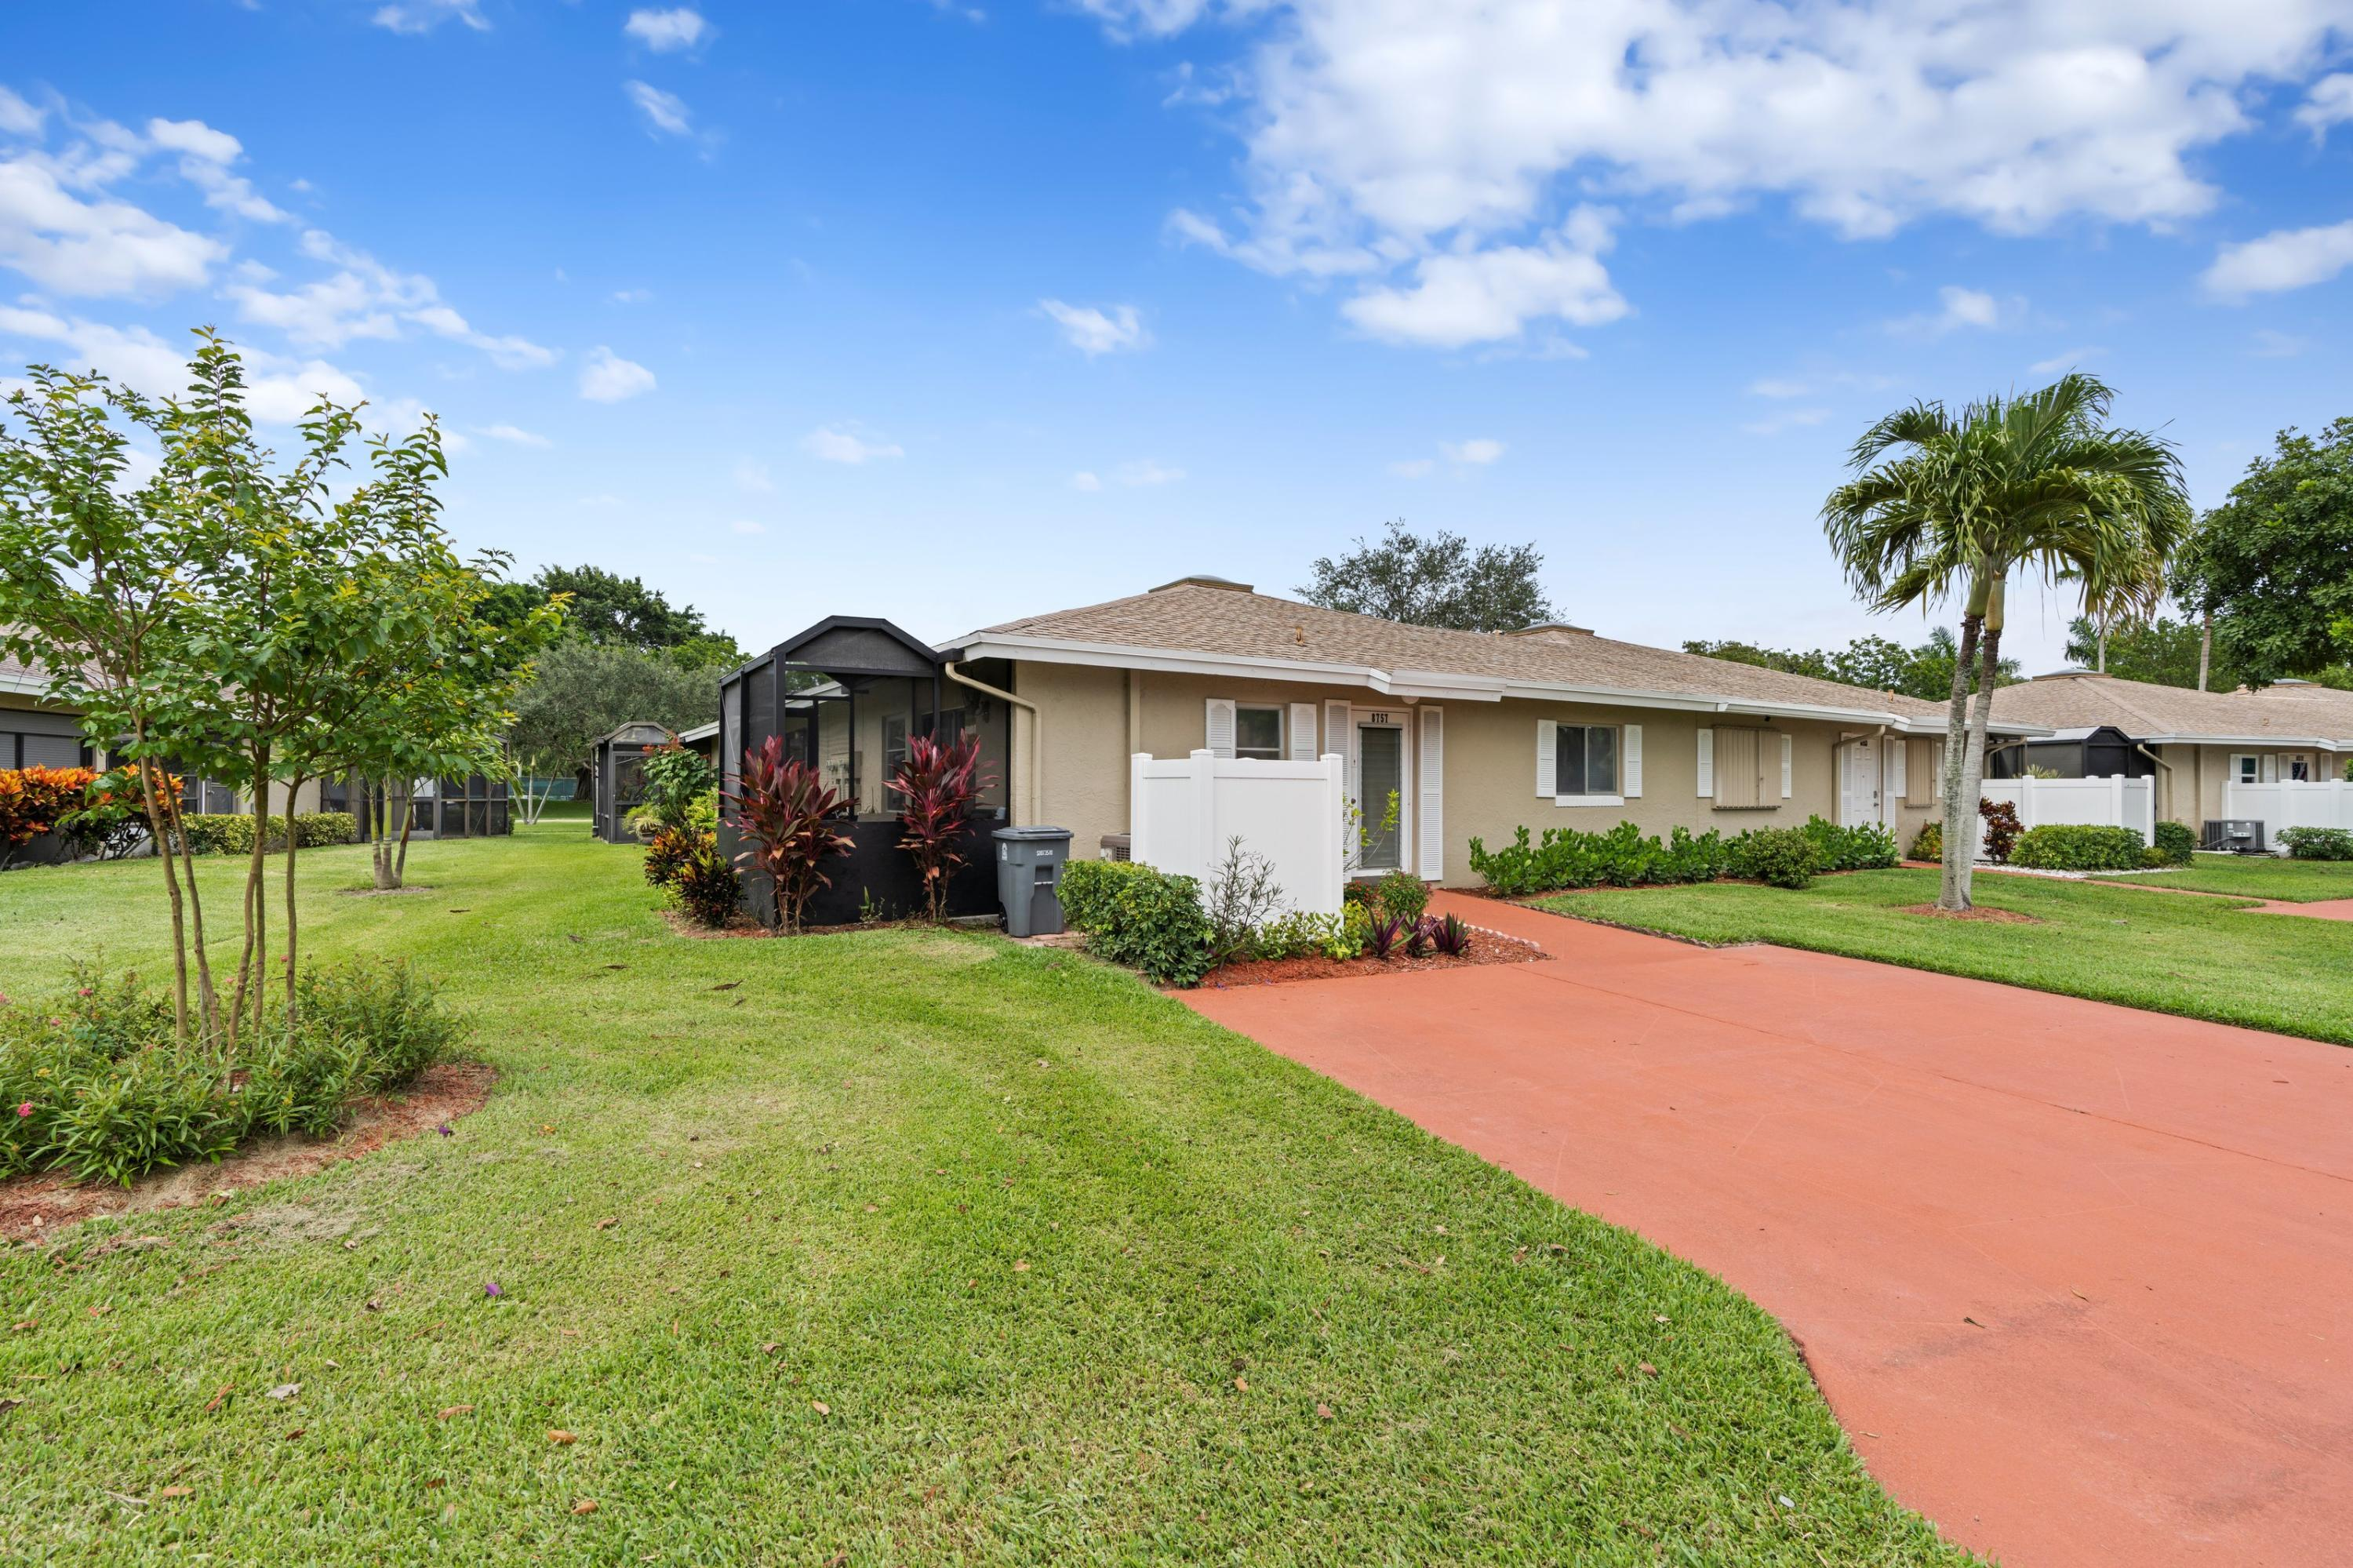 8757  Windrow Way A For Sale 10724550, FL